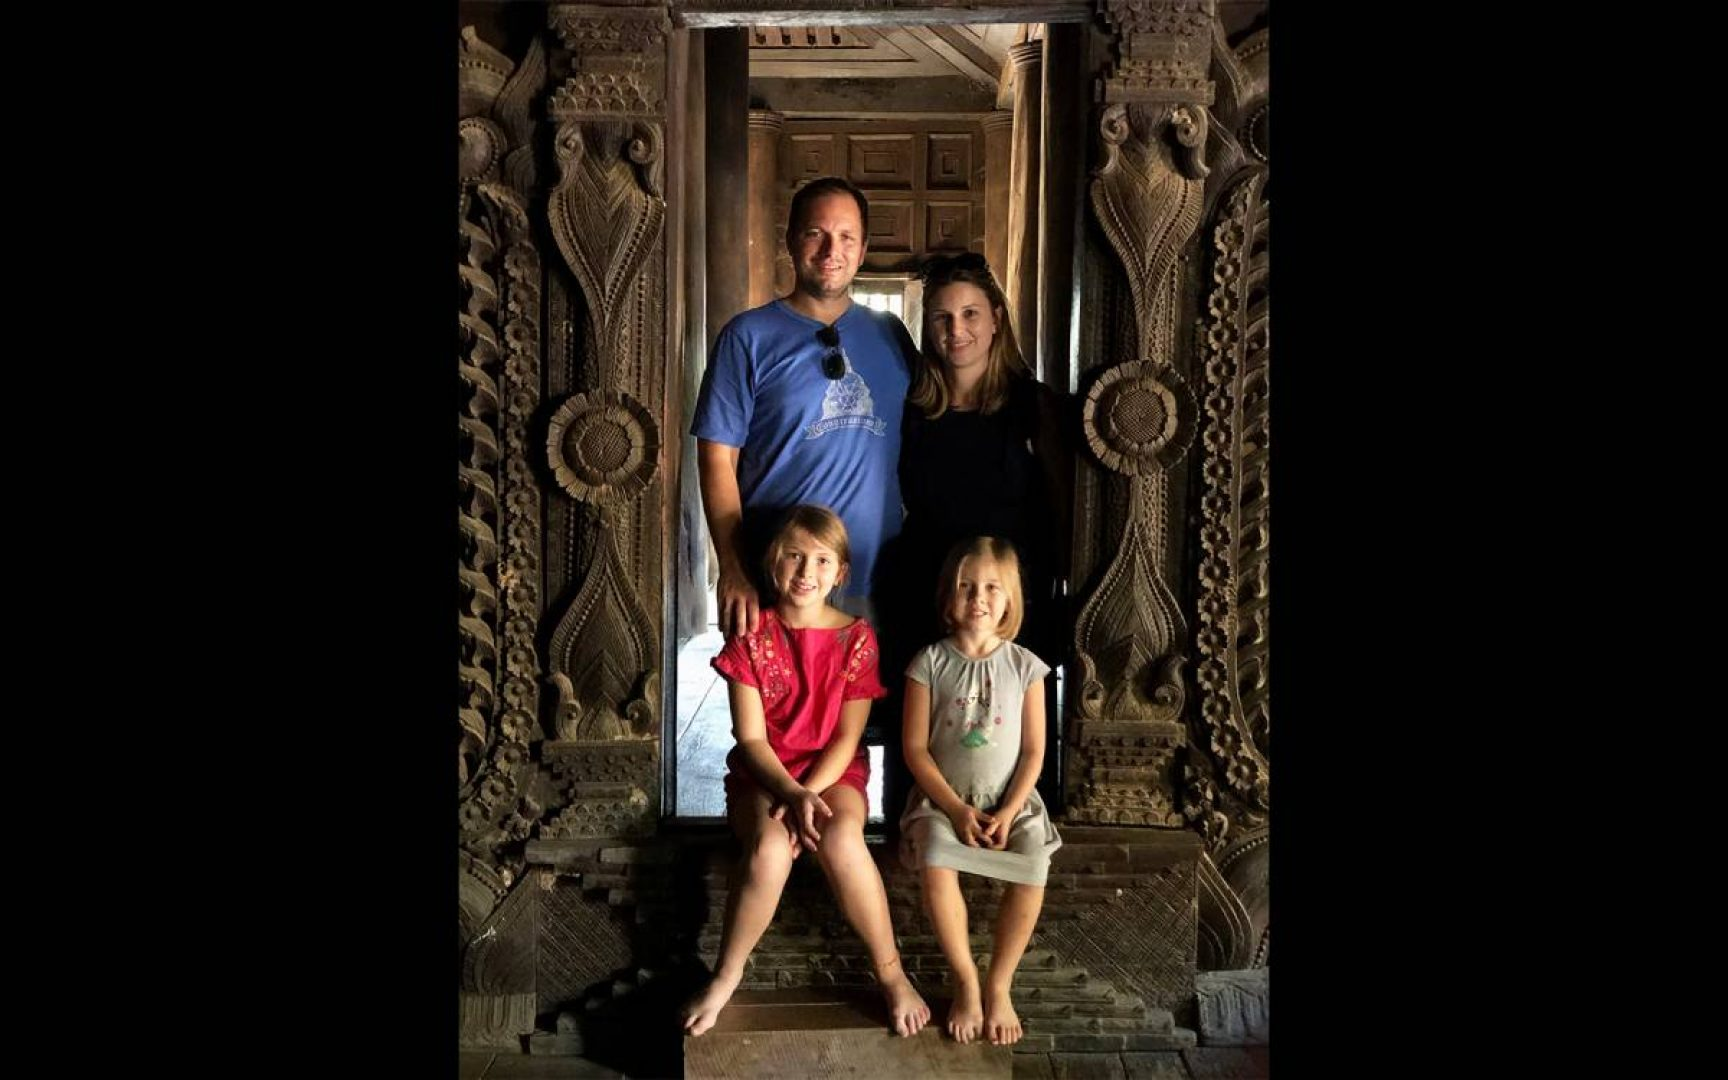 Aaron and Carly Topol pose for a photo in a old building in China with their two daughters